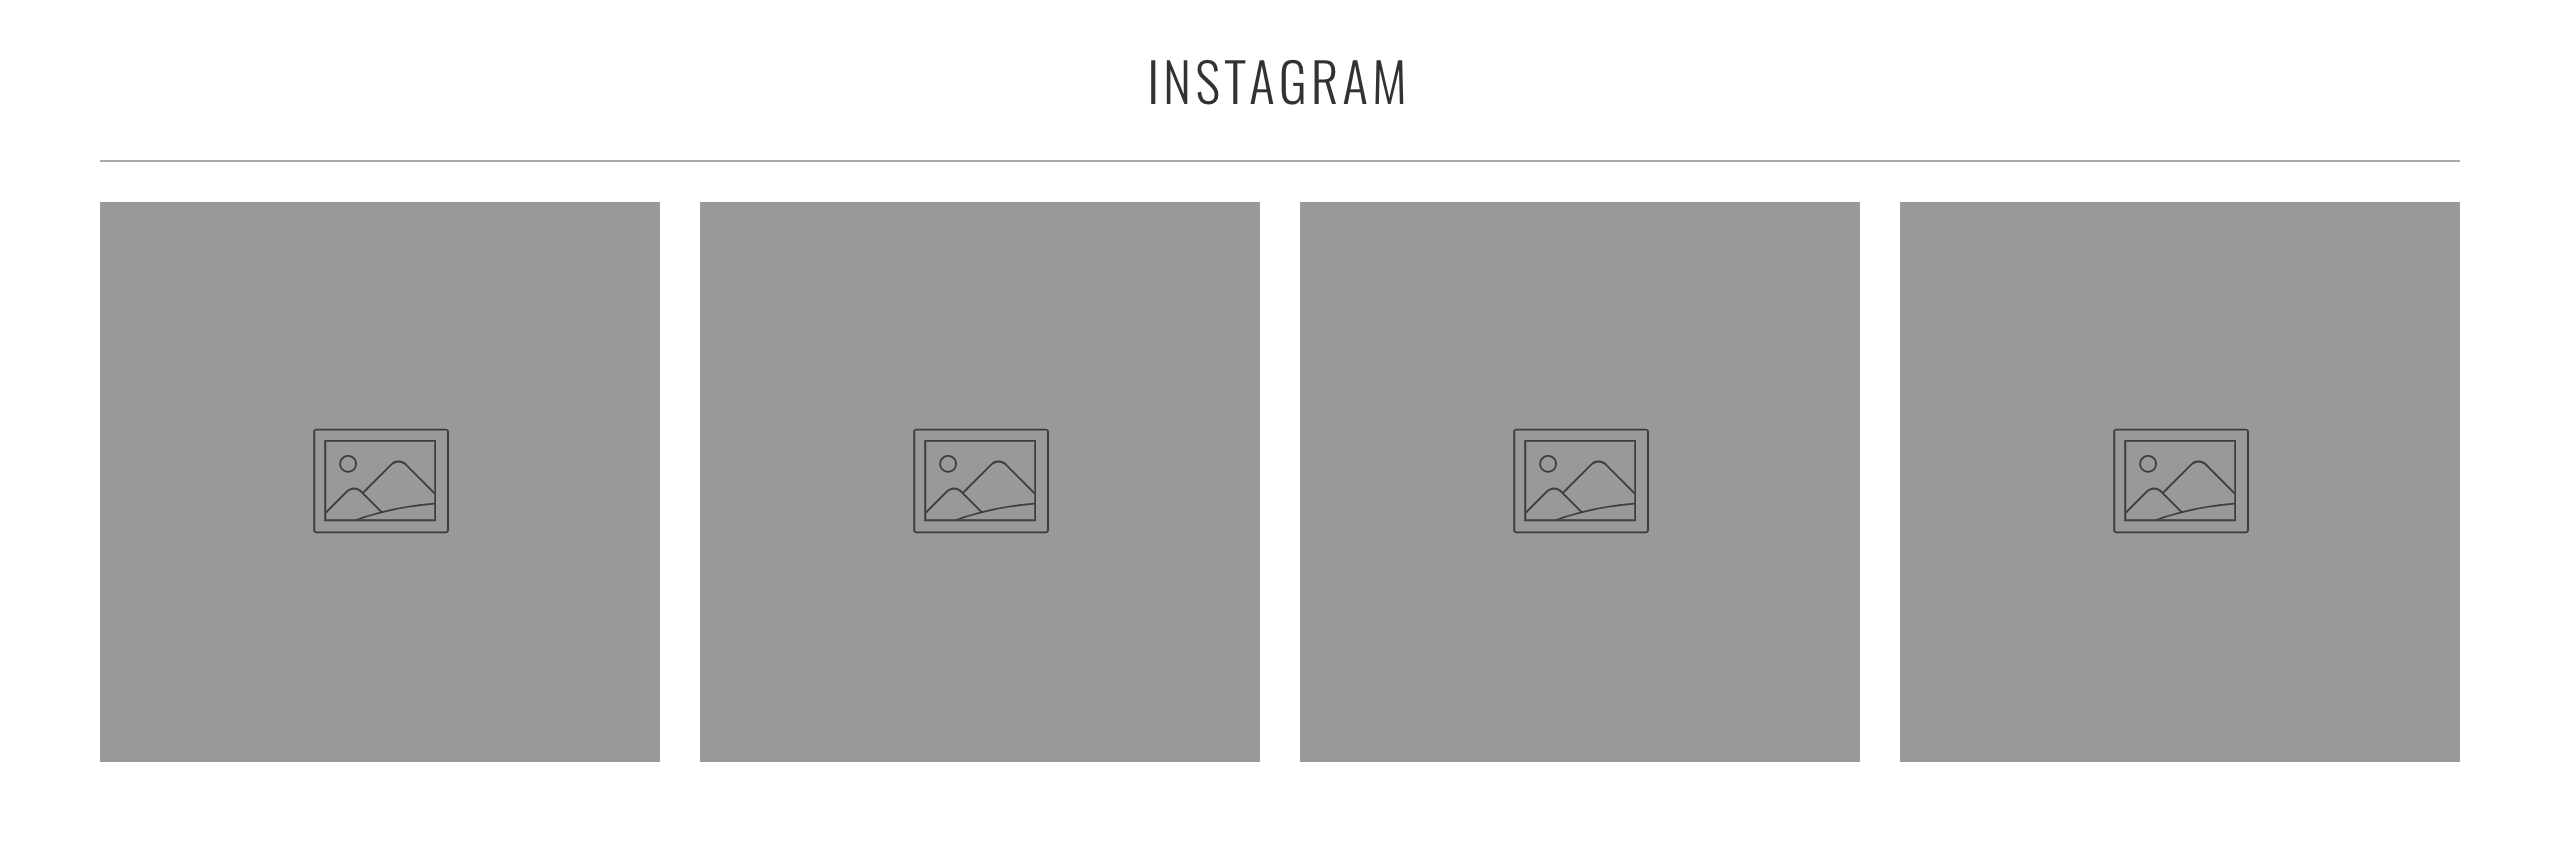 instagram-section-default.png